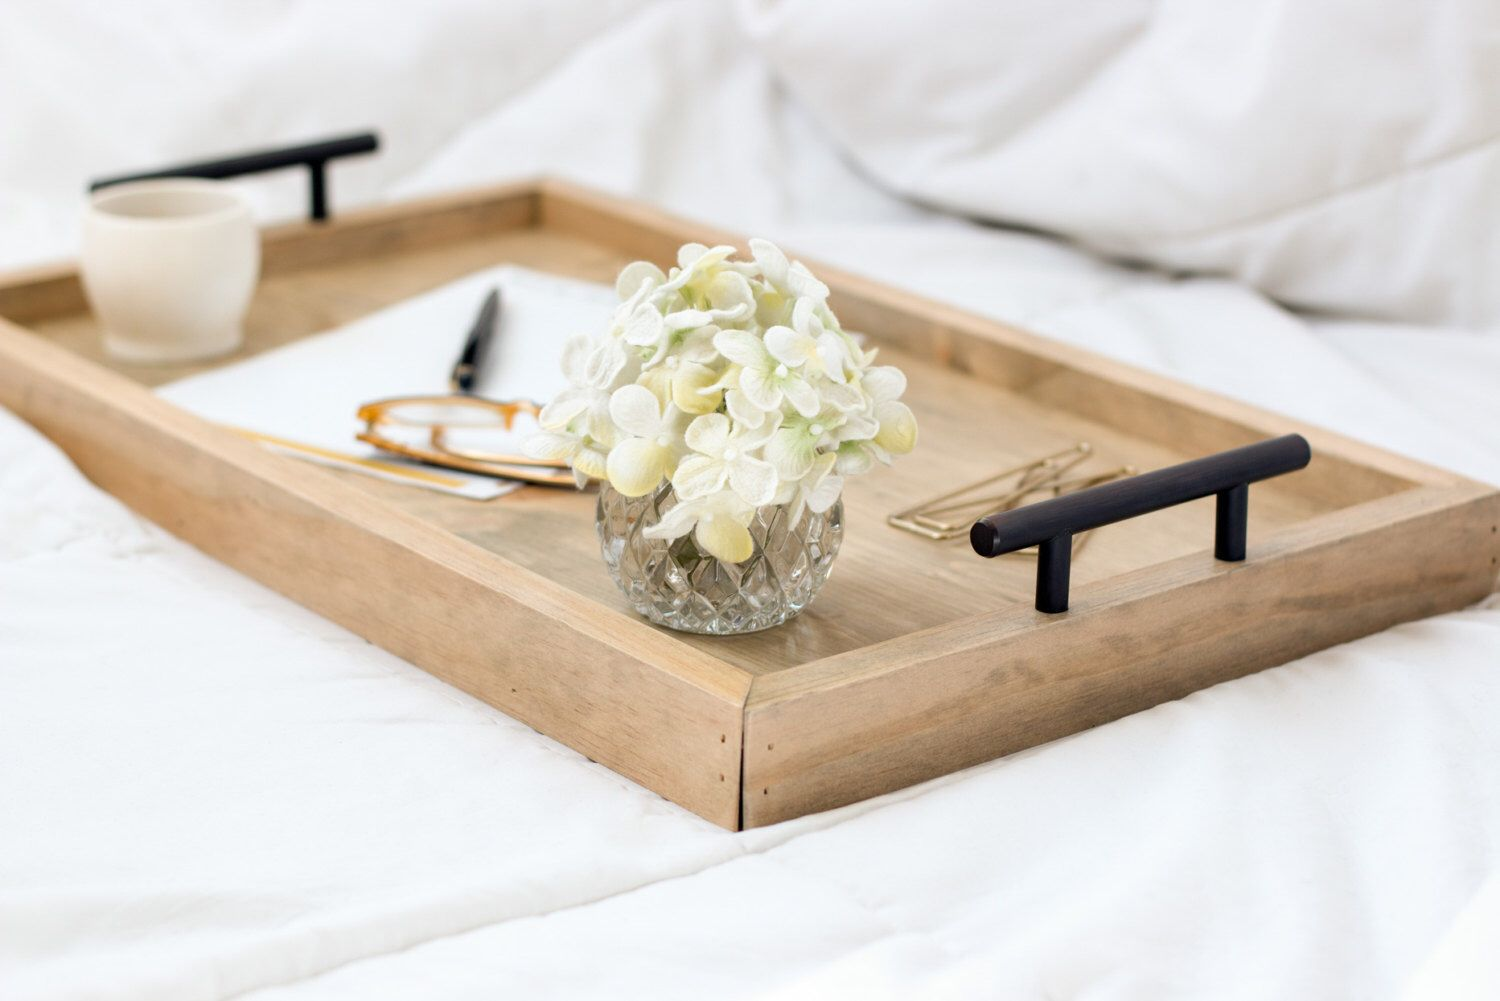 Breakfast Trays For Bed Beauteous Serving Tray Wood Serving Tray Breakfast Tray Housewarming Gift Inspiration Design